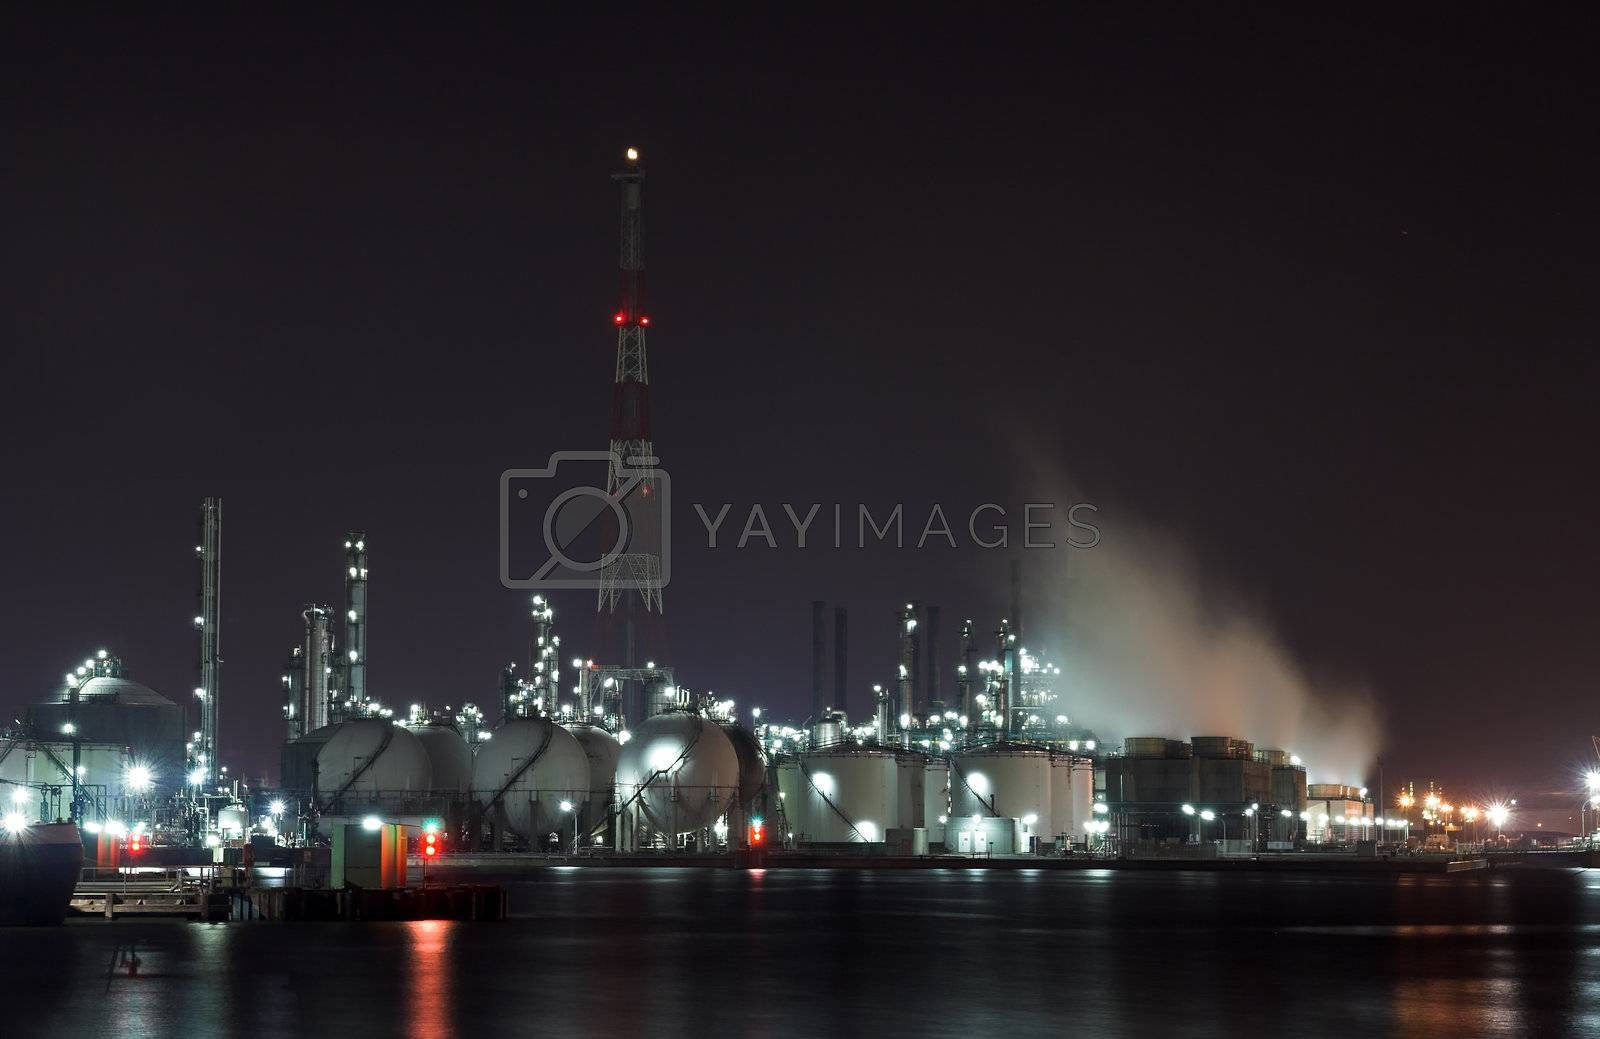 Petrochemical plant in the night by MikLav